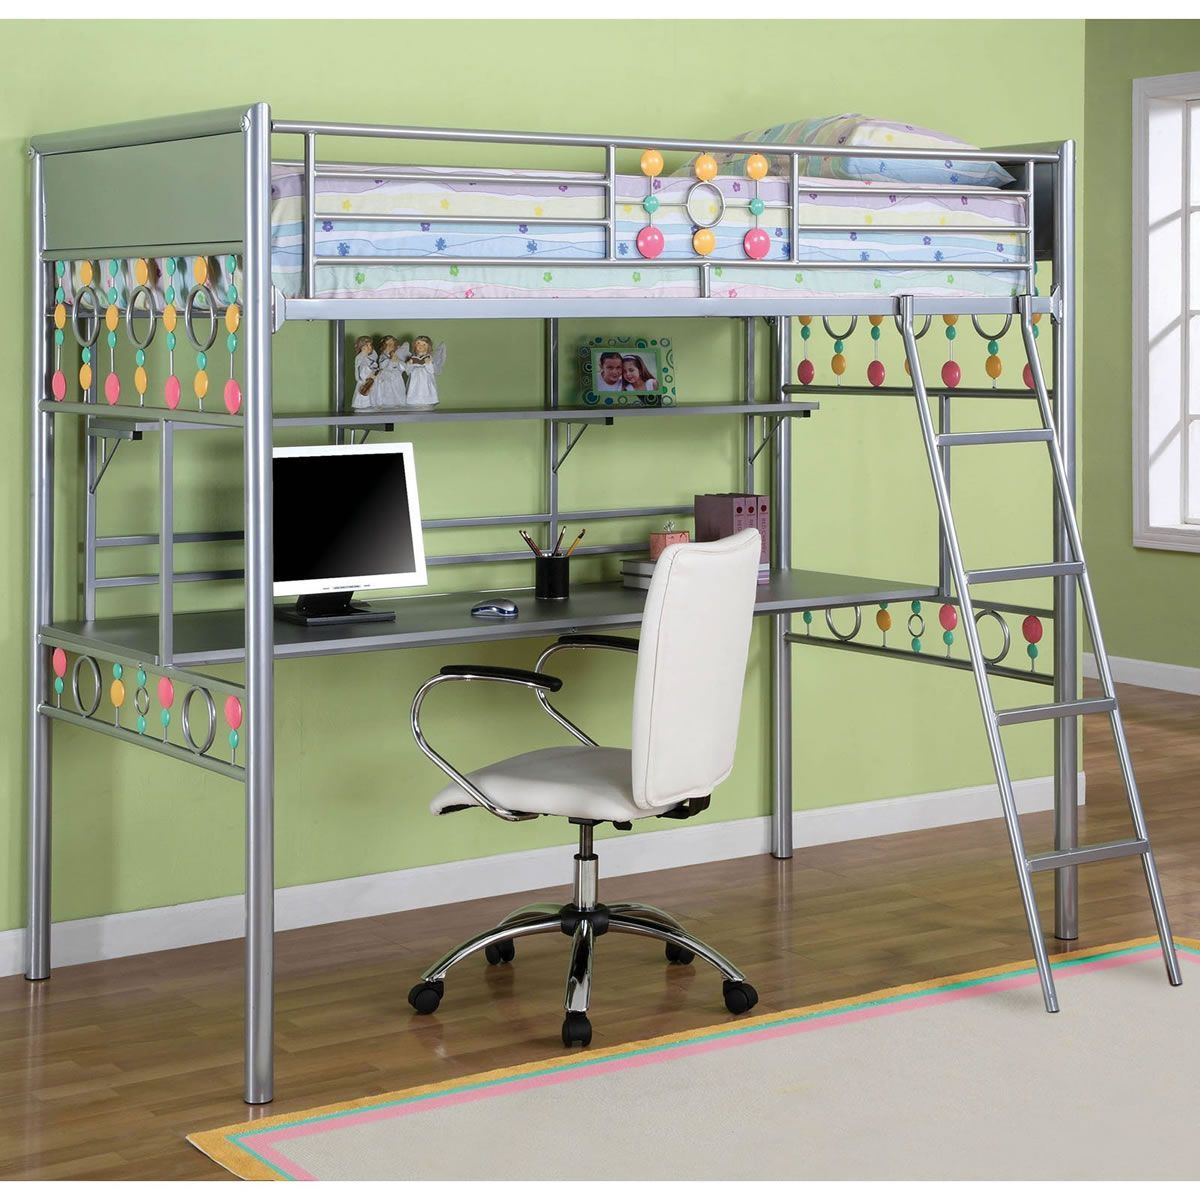 10 Bunk Beds For Kids Couples Singles And Teenagers Bunk Bed With Desk Build A Loft Bed Bed With Desk Underneath Ikea